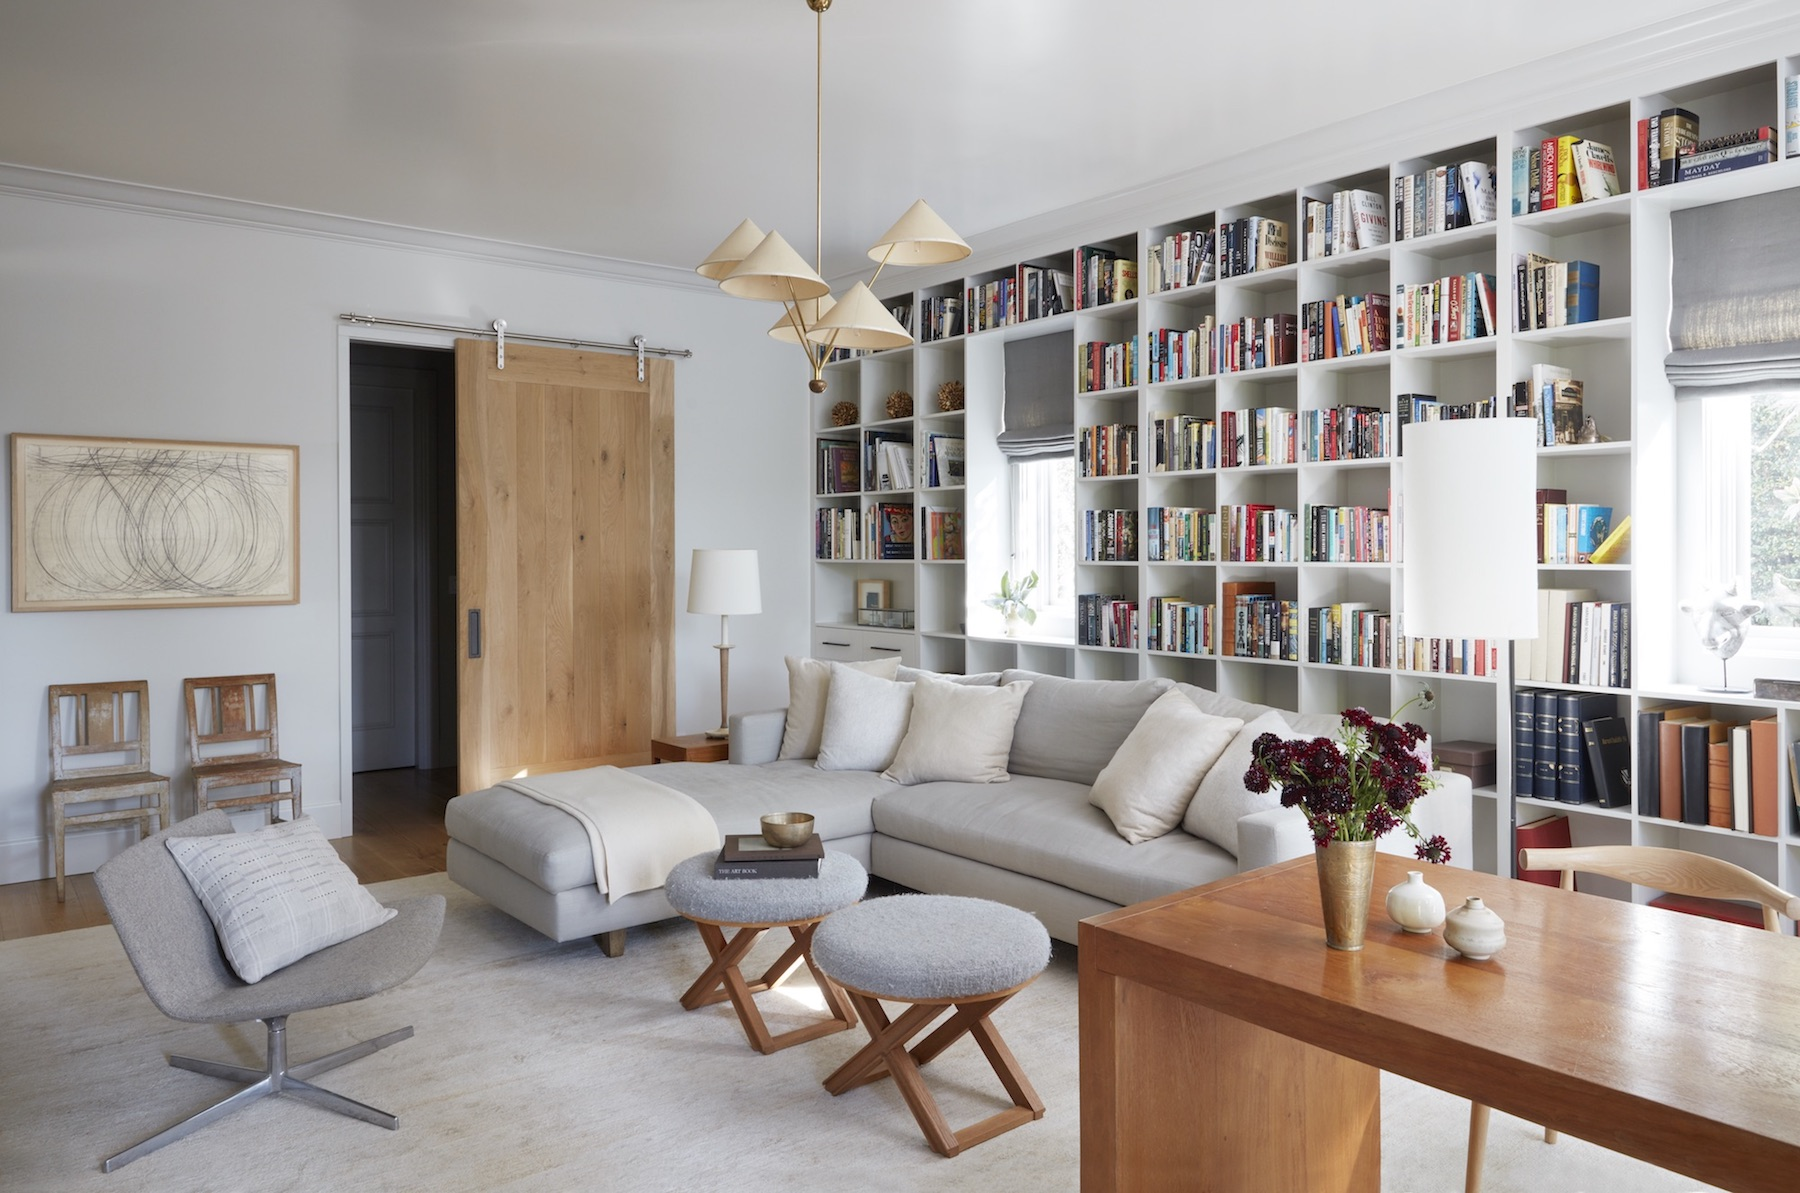 M.Elle Design  brings Brentwood brilliance with this bibliophile's living room